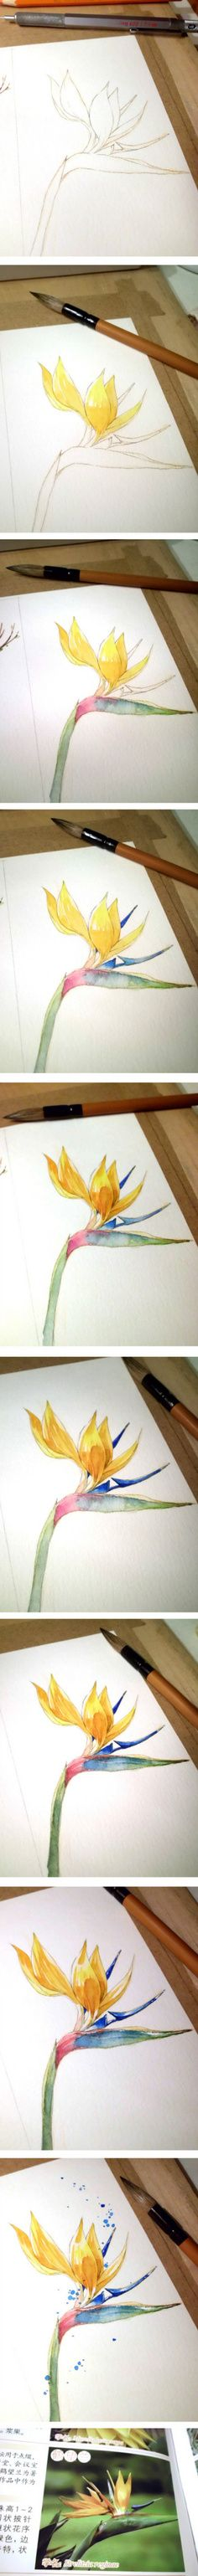 step by step painting